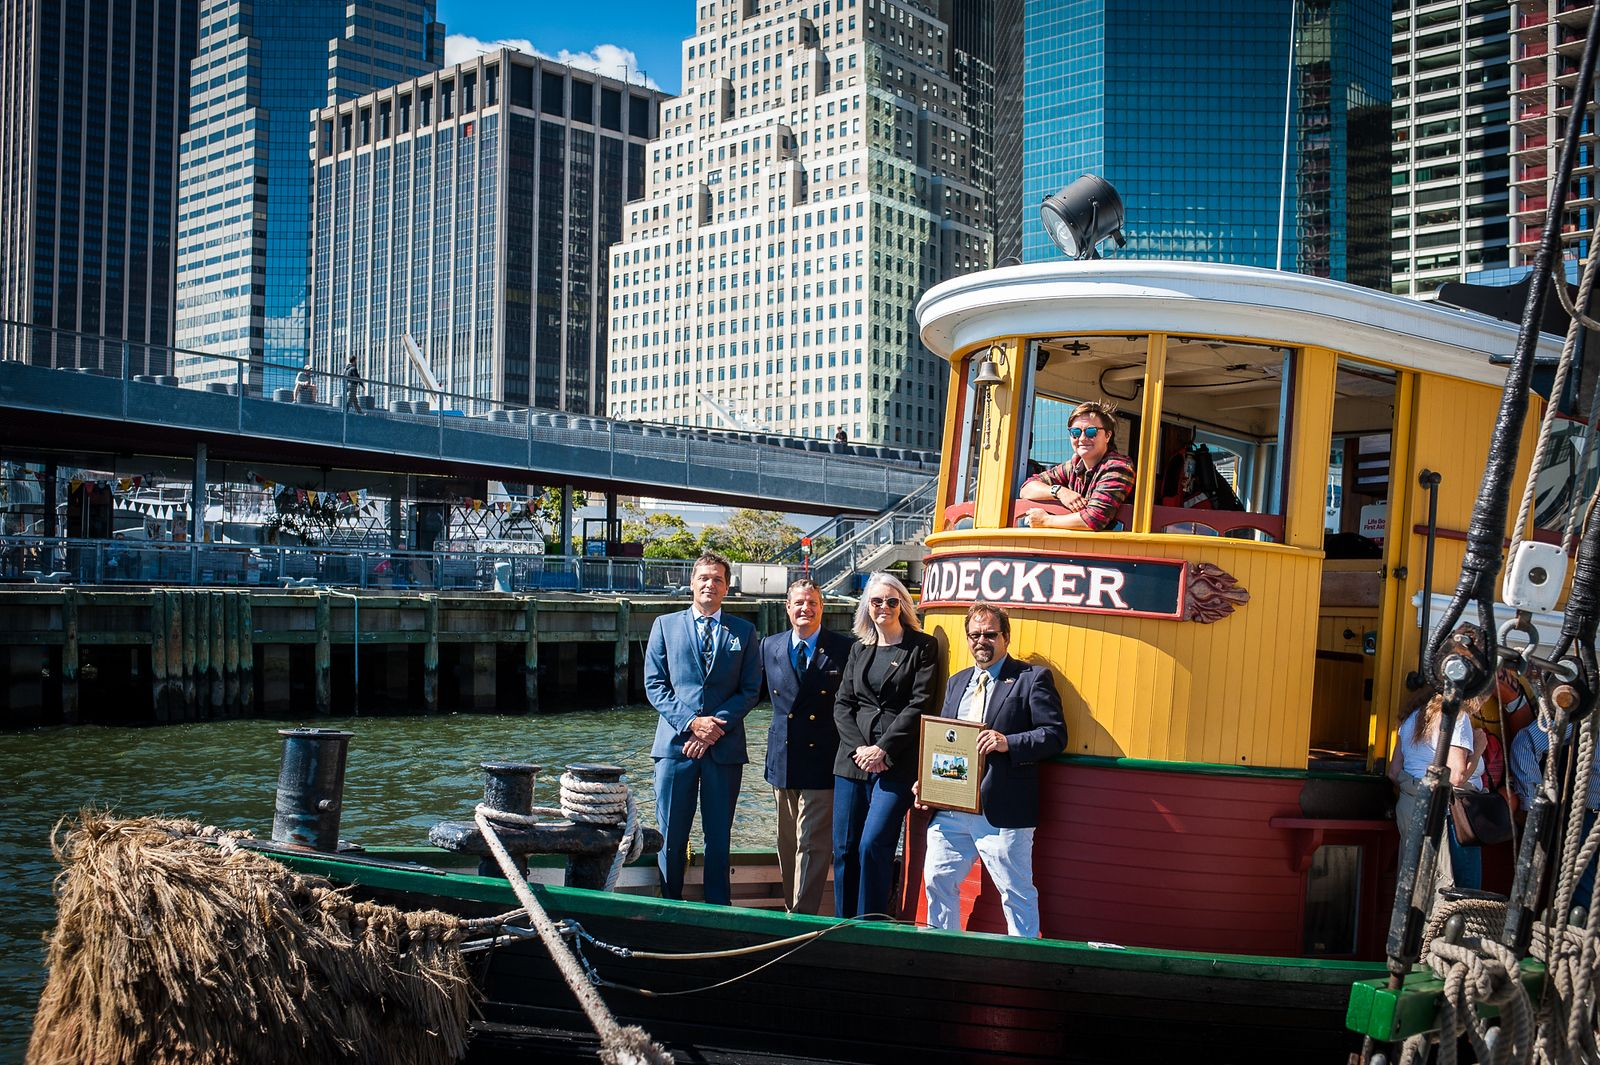 W.O. Decker Cruise at South Street Seaport Museum